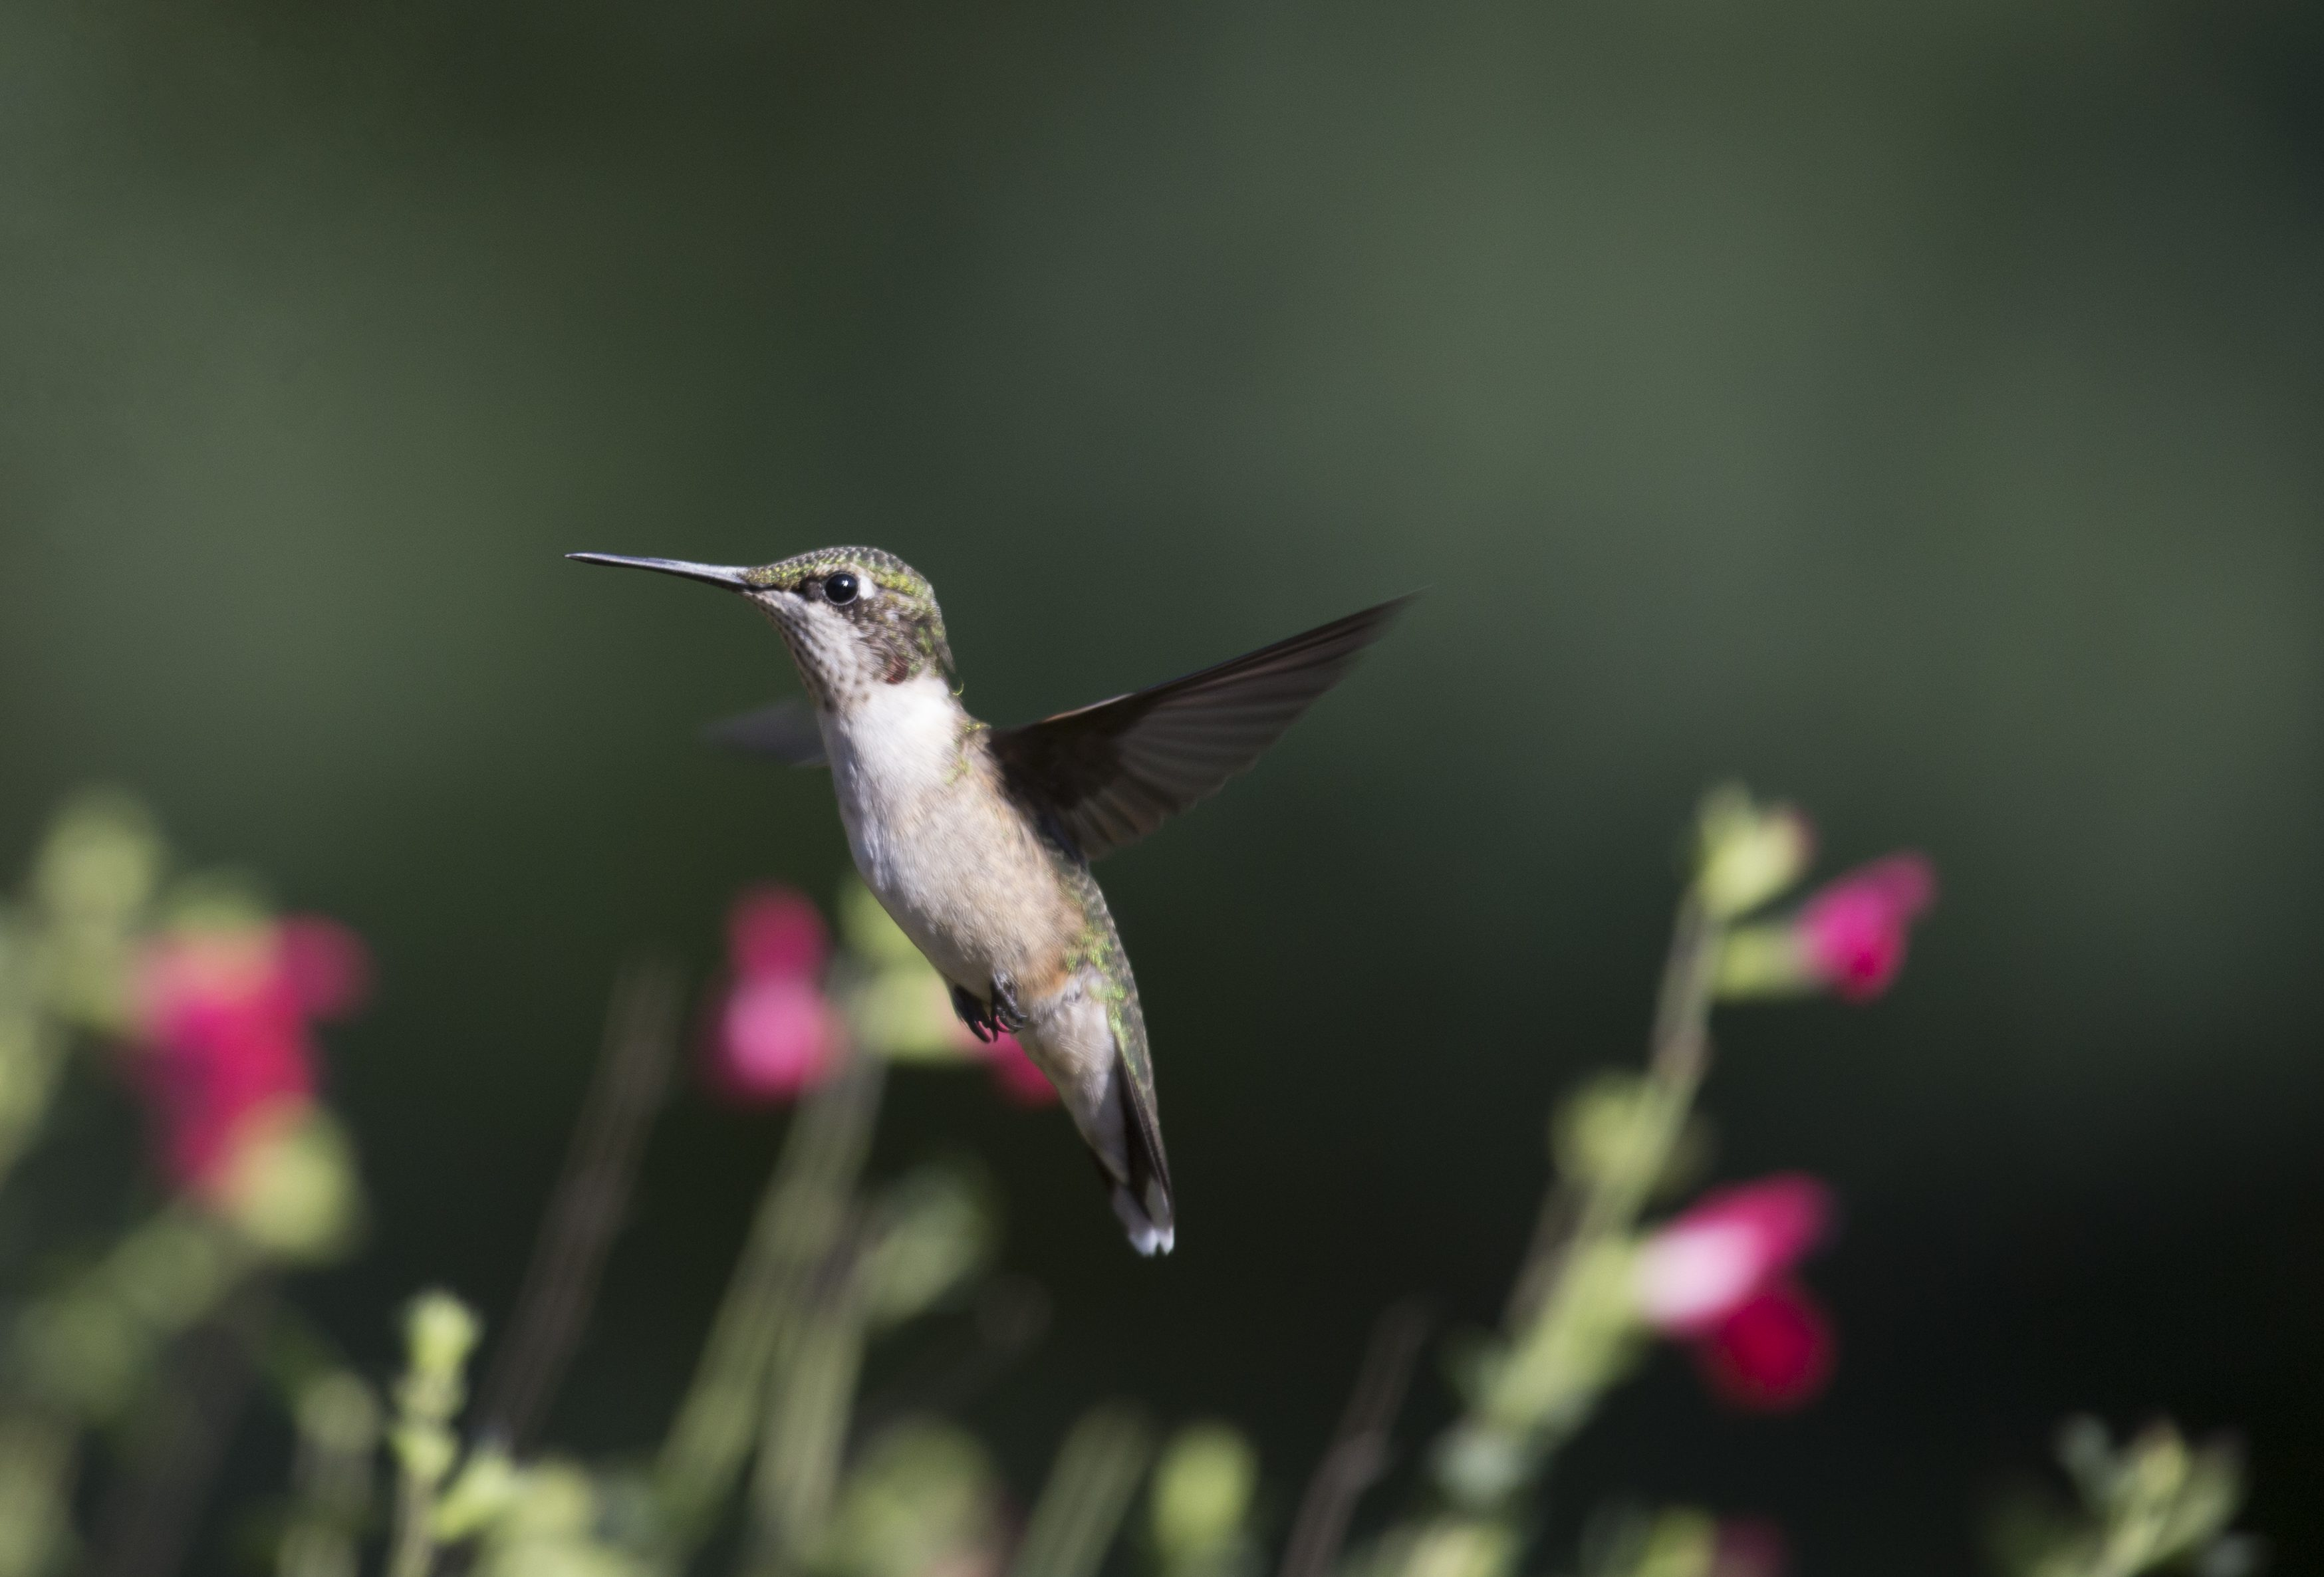 The Flight of a Hummingbird by Connie Etter